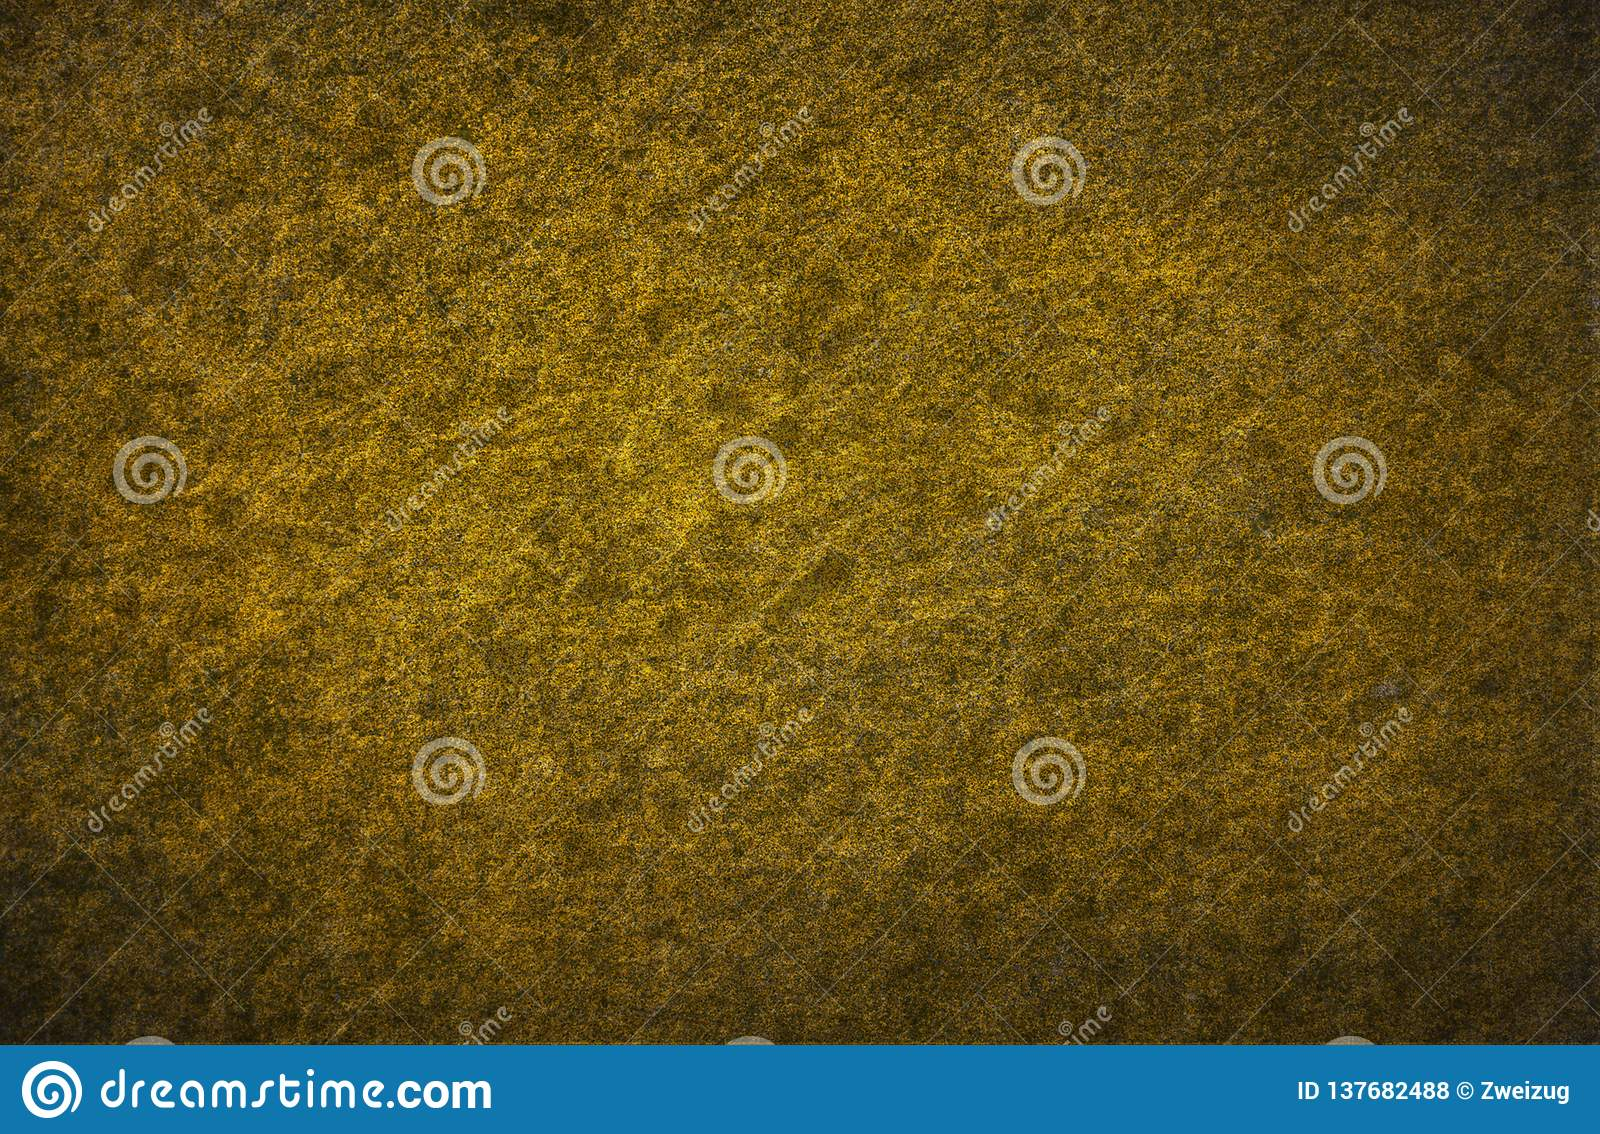 Golden stucco wall detail grunge pattern surface abstract texture background